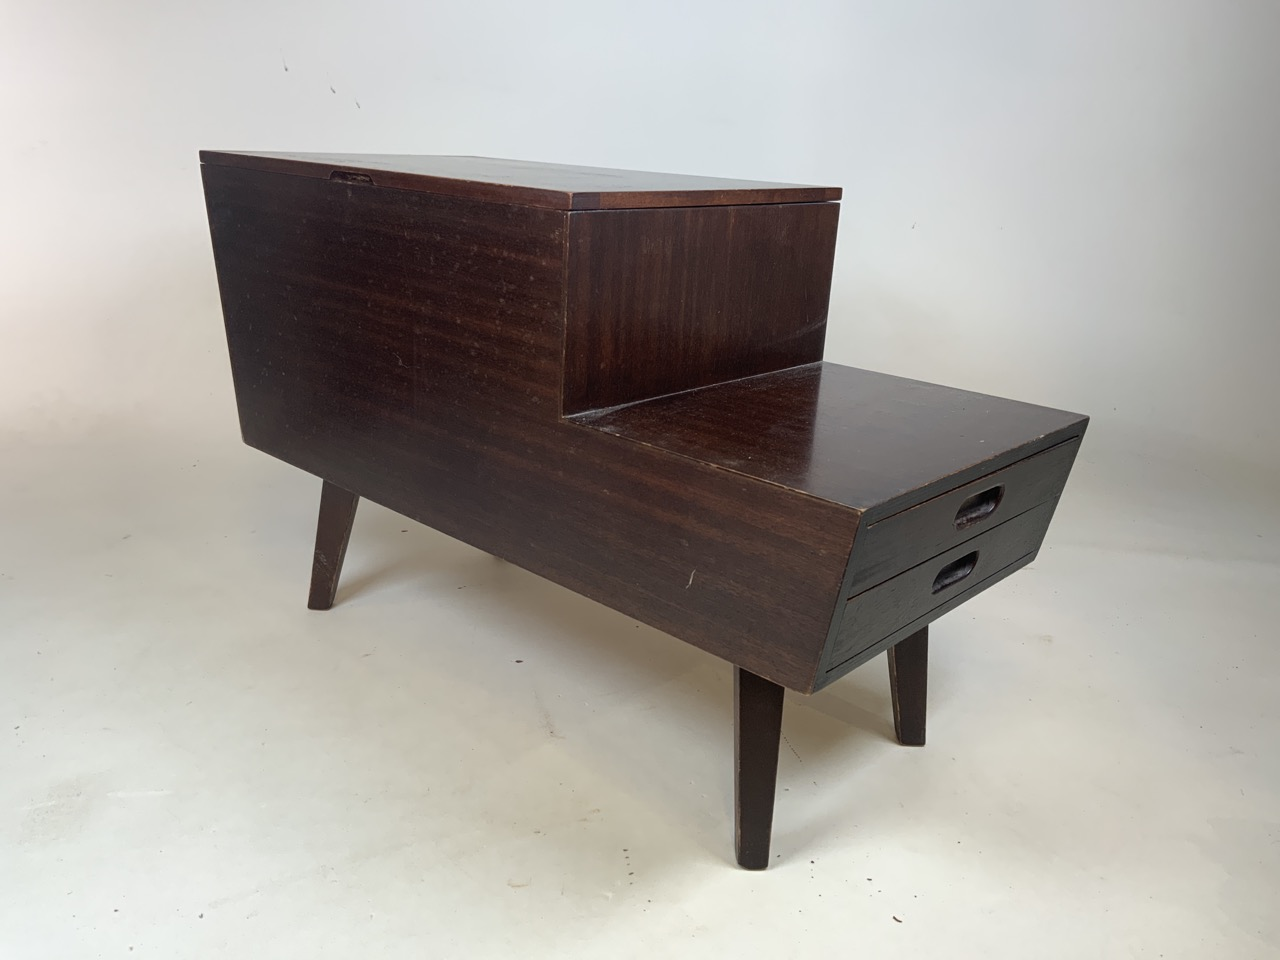 Mid century Vanson teak sewing/ coffee table with lift up top and two drawers. Sliding storage